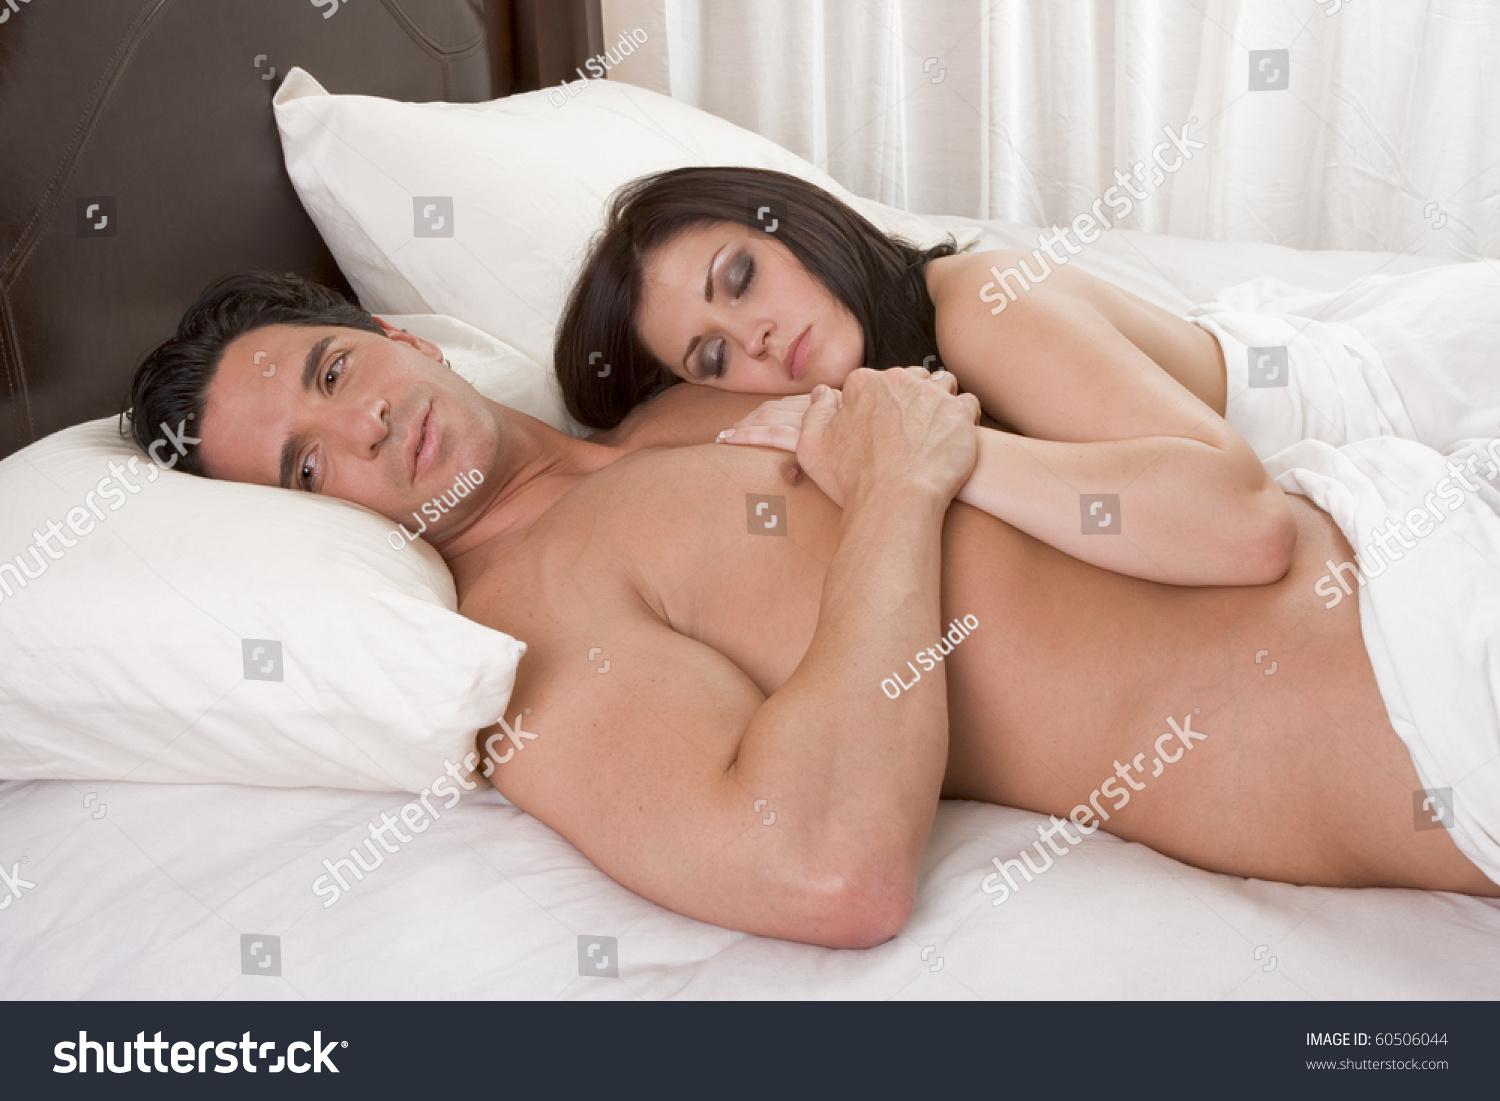 sexy nude couple on bed